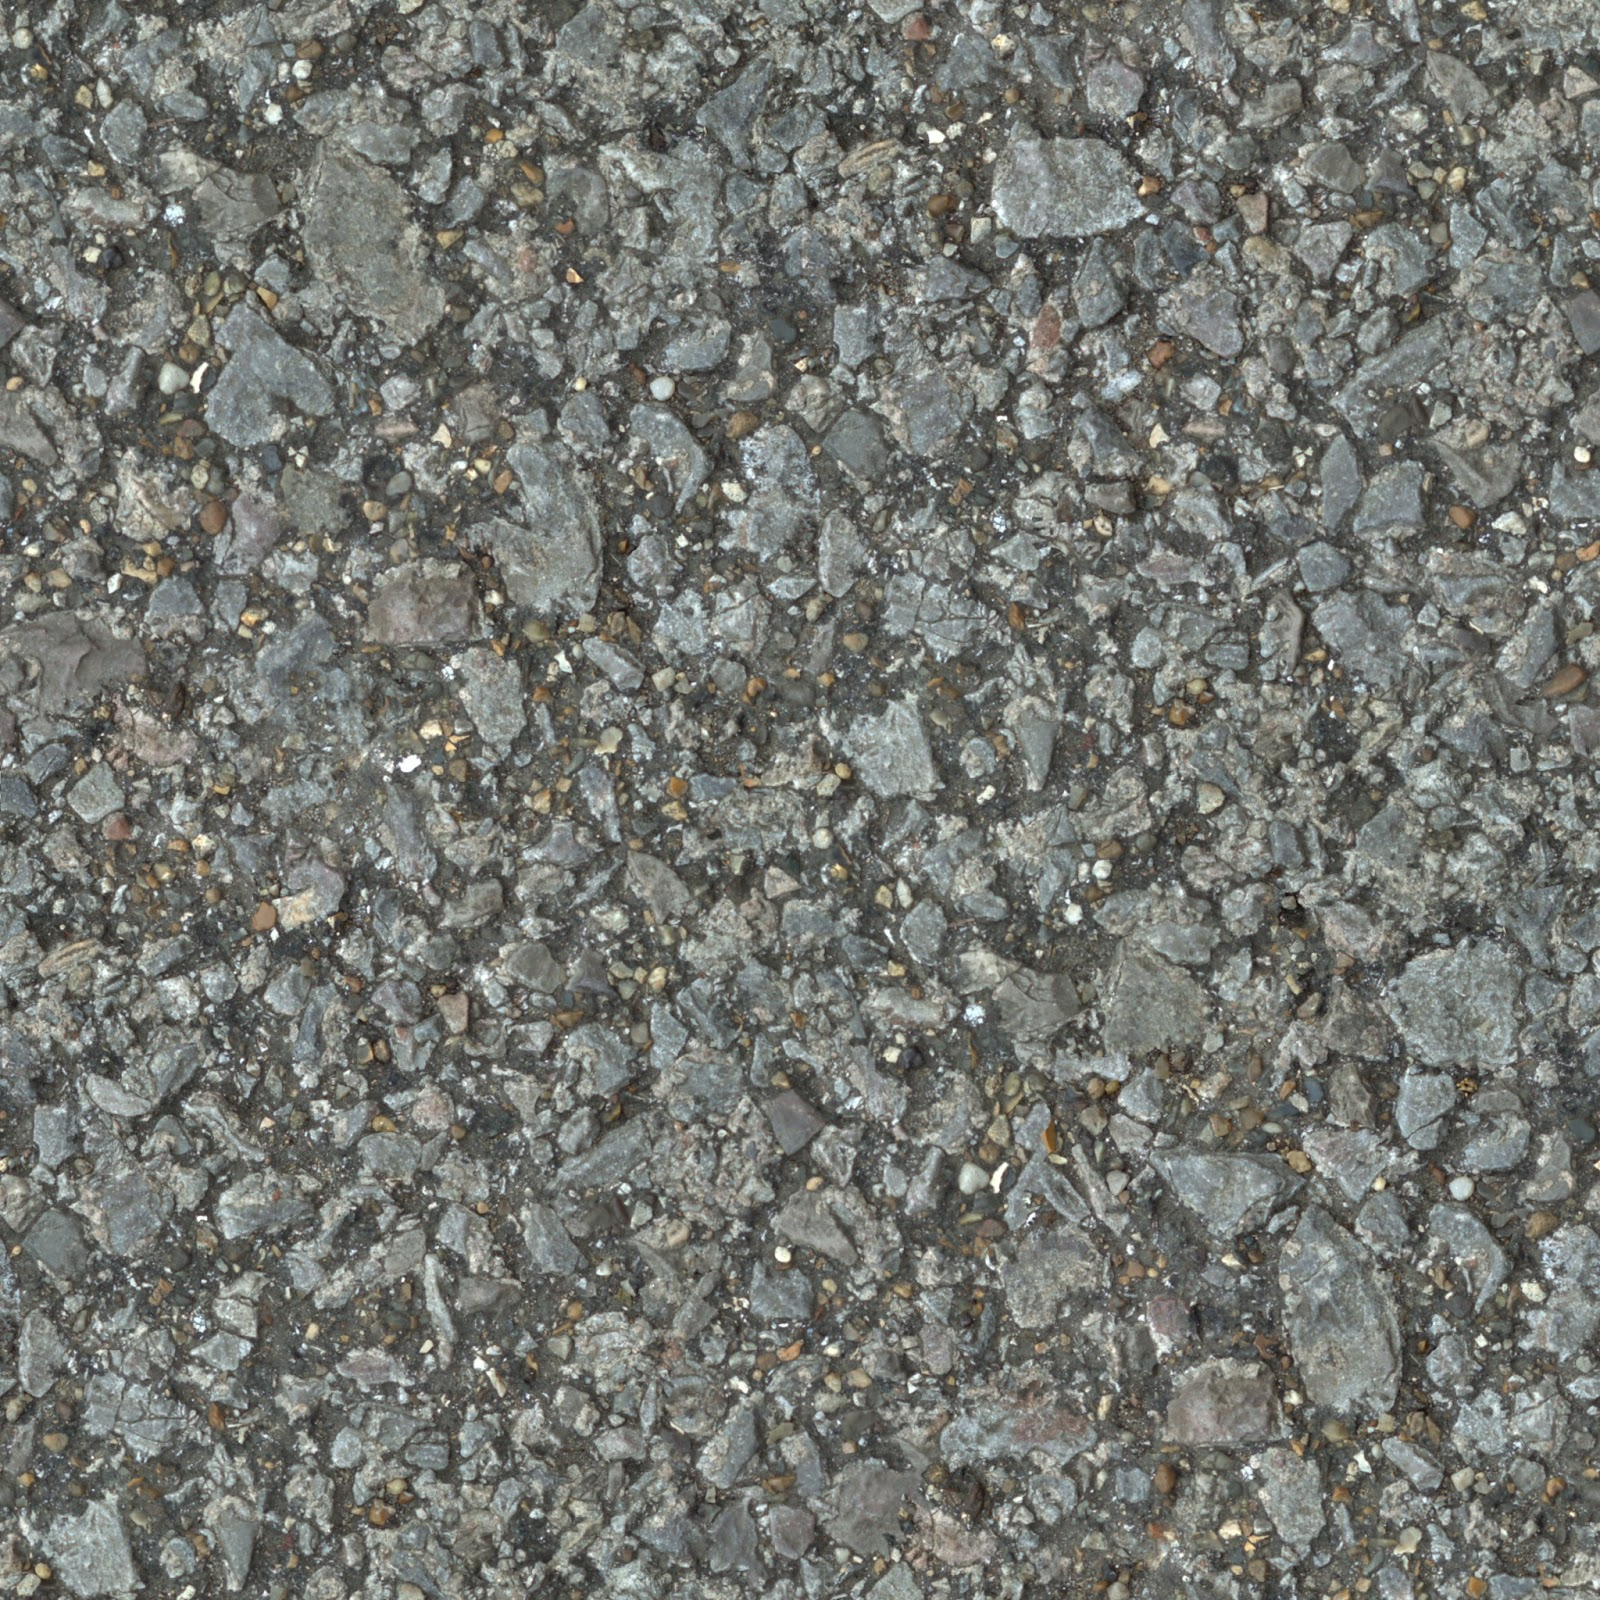 (PEBBLESTONE 3) concrete cobble ground gravel floor seamless texture 2048x2048